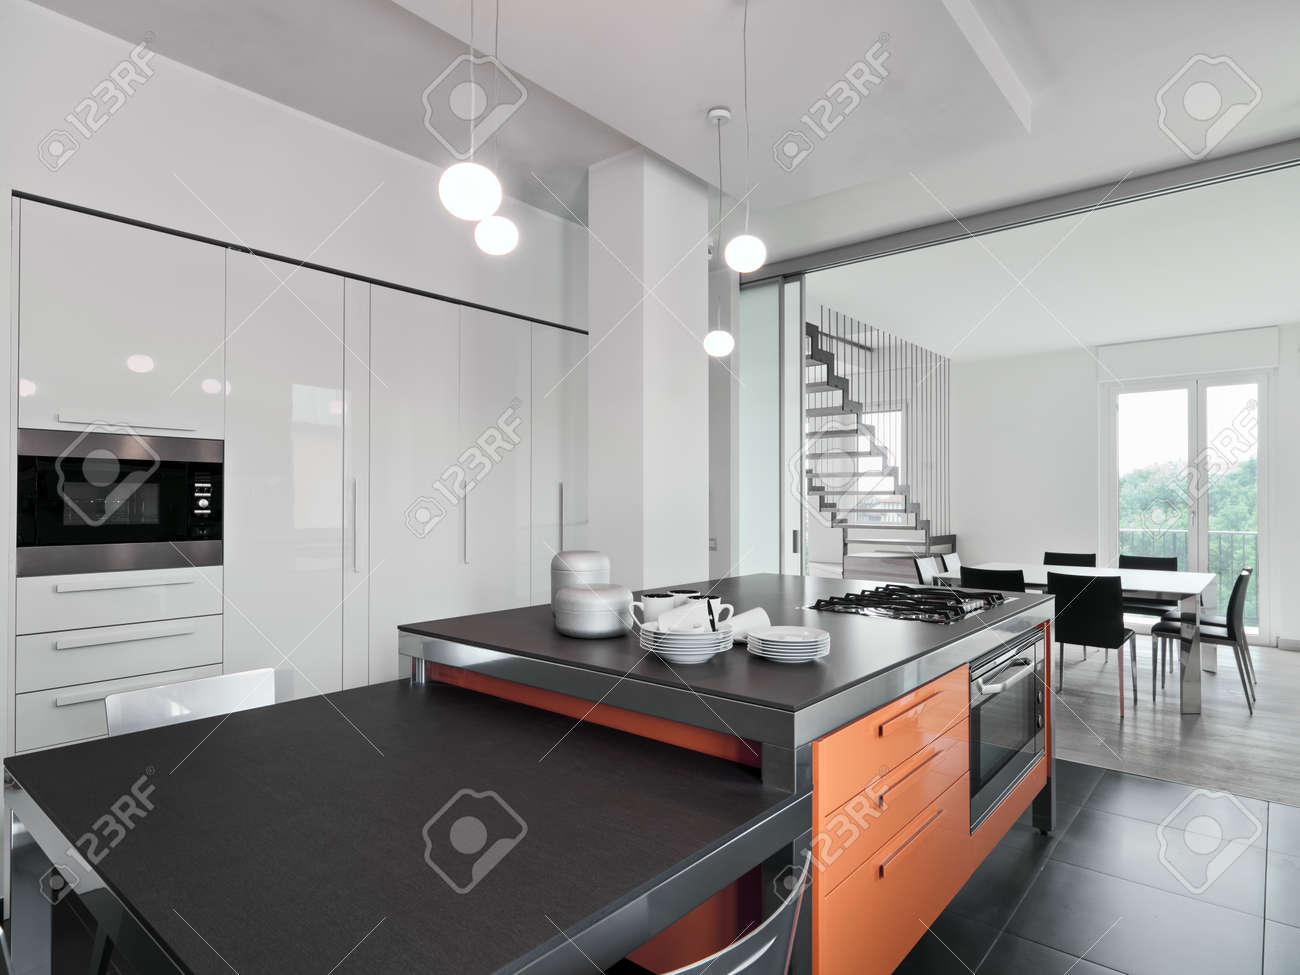 interior view of a modern kitchen with kitchen island overlooking on the dining room Standard-Bild - 49755100